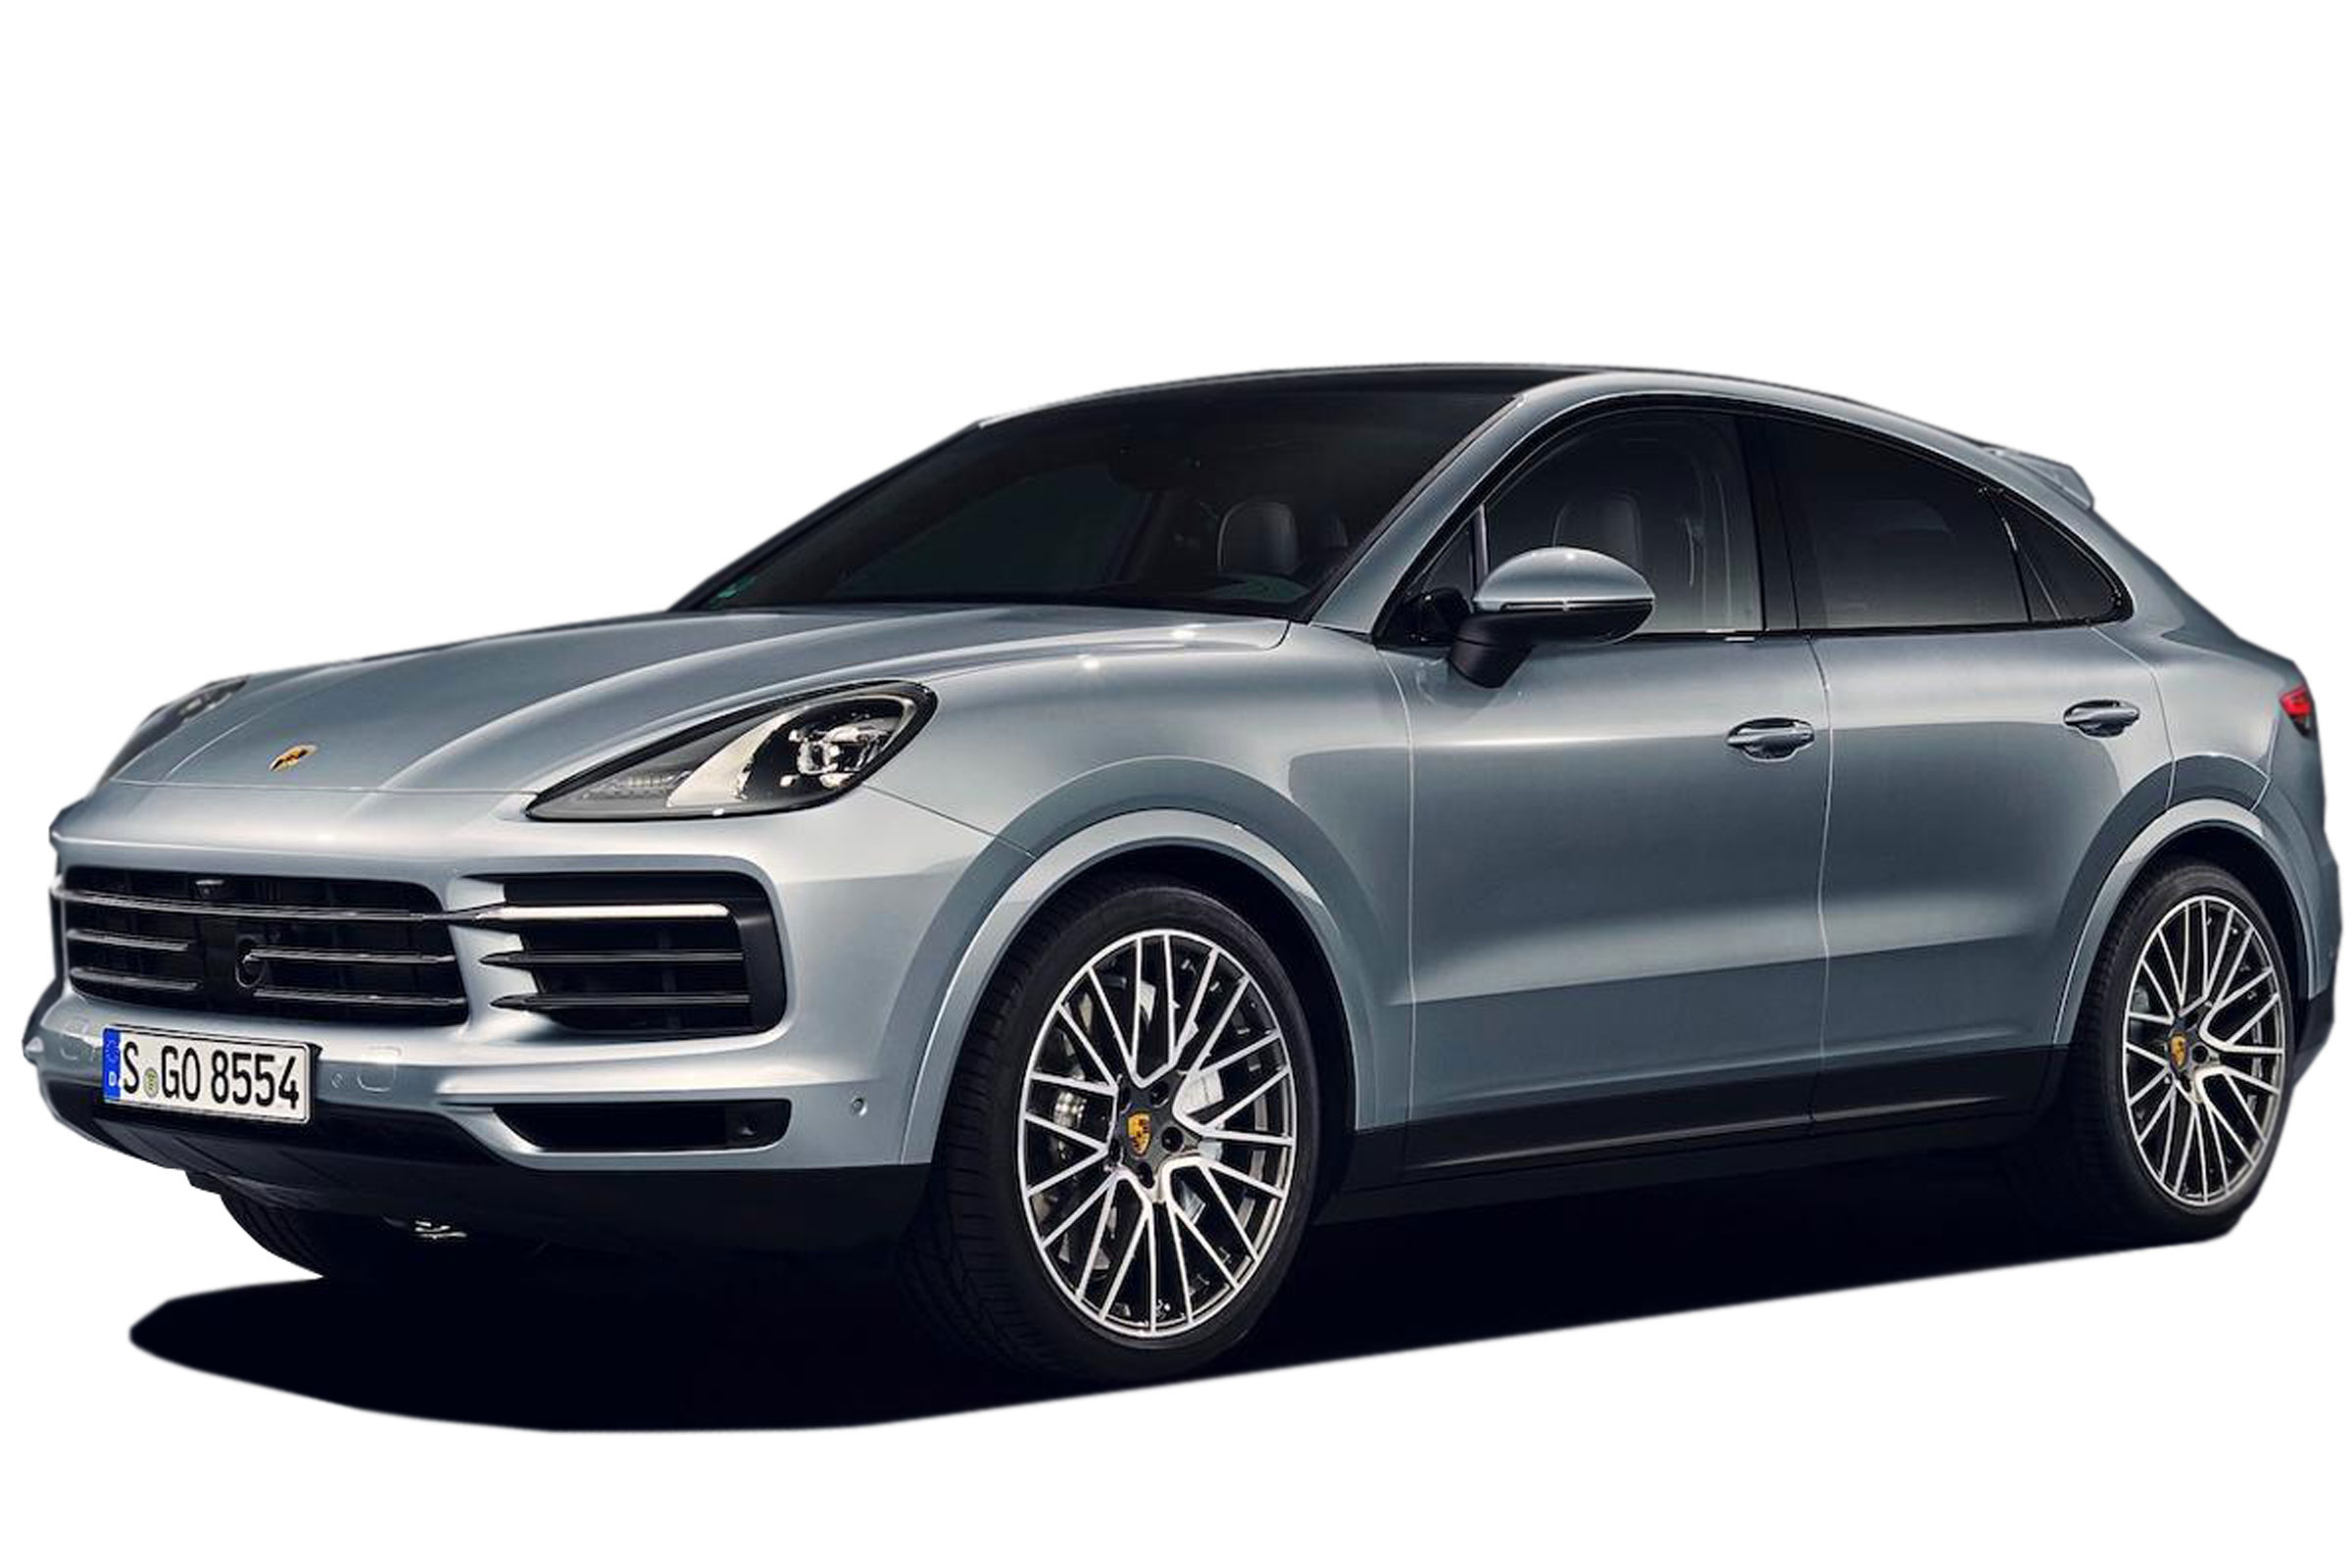 Porsche Cayenne Coupe Suv 2020 Review Carbuyer